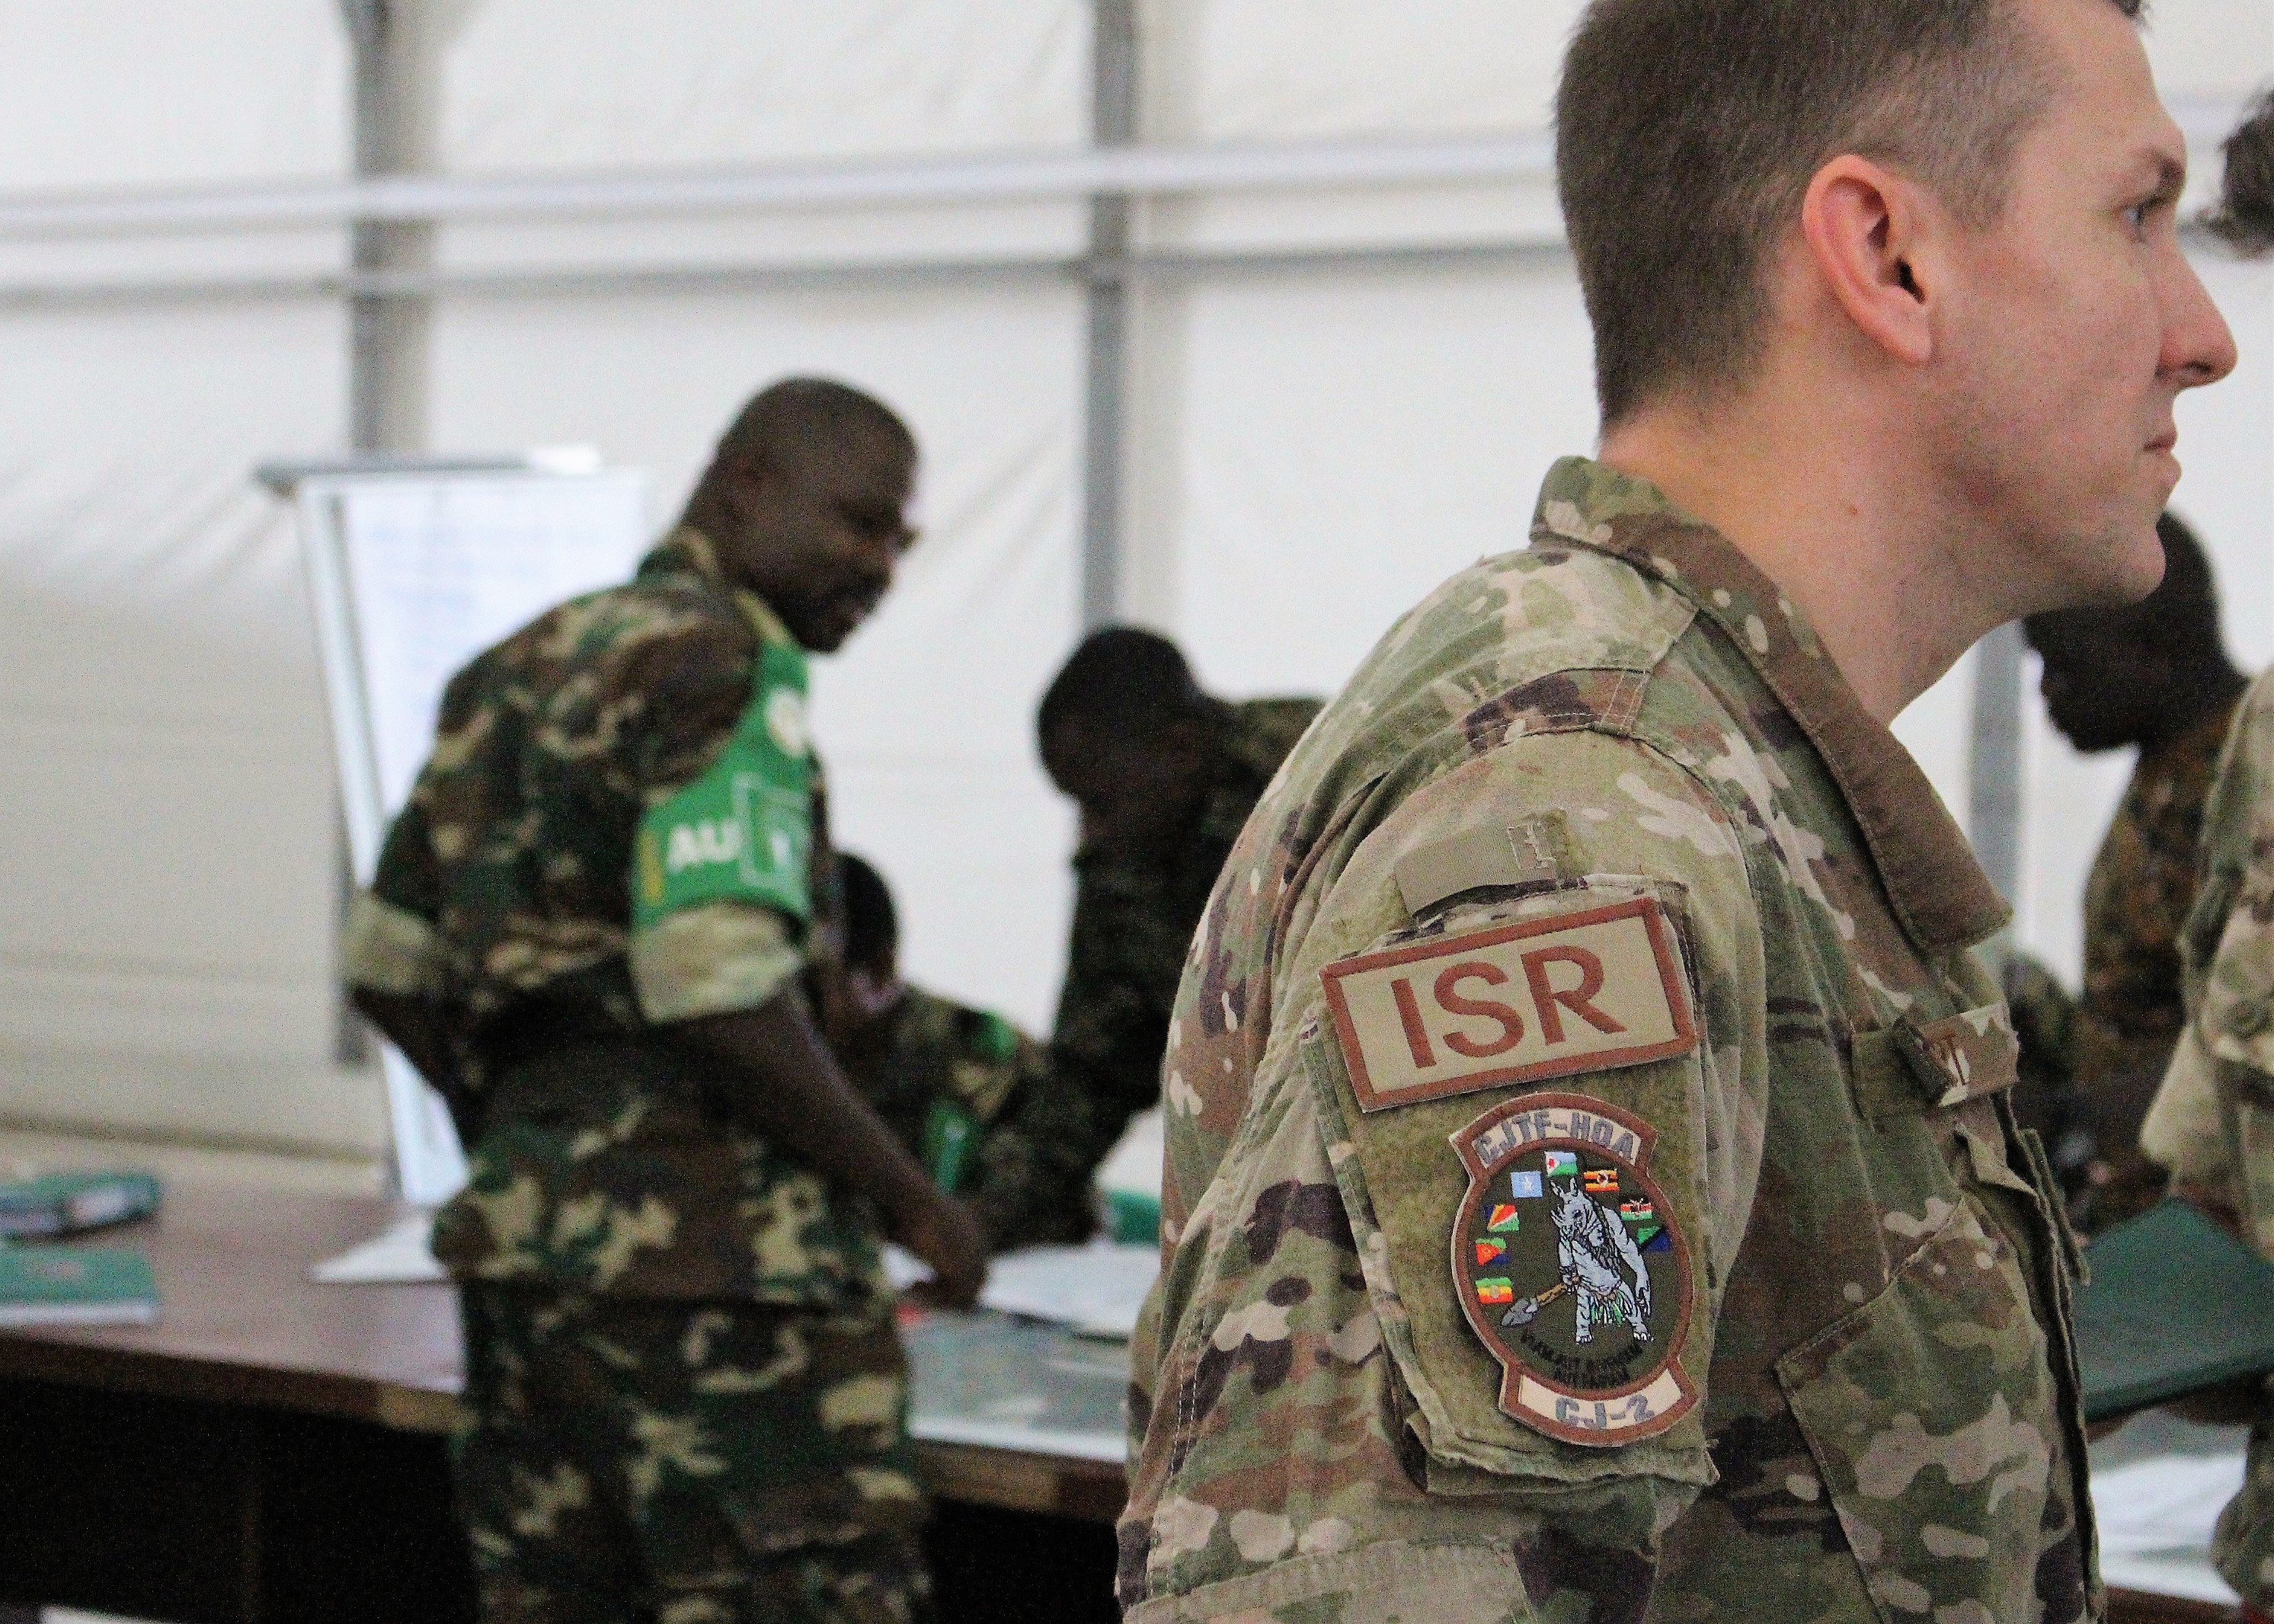 U.S. Air Force Capt. Brian Hurt, Combined Joint Task Force-Horn of Africa, Intelligence Directorate collection manager, advises and assist during an intelligence, surveillance and reconnaissance (ISR) course in Mogadishu, Somalia, Aug. 7, 2017. Soldiers from five countries supporting African Union Mission in Somalia are taking the British led ISR course to strengthen efforts countering regional violent extremist organizations within the region. (Photo courtesy U.S. Air Force Capt. Brian Hurt/Released)